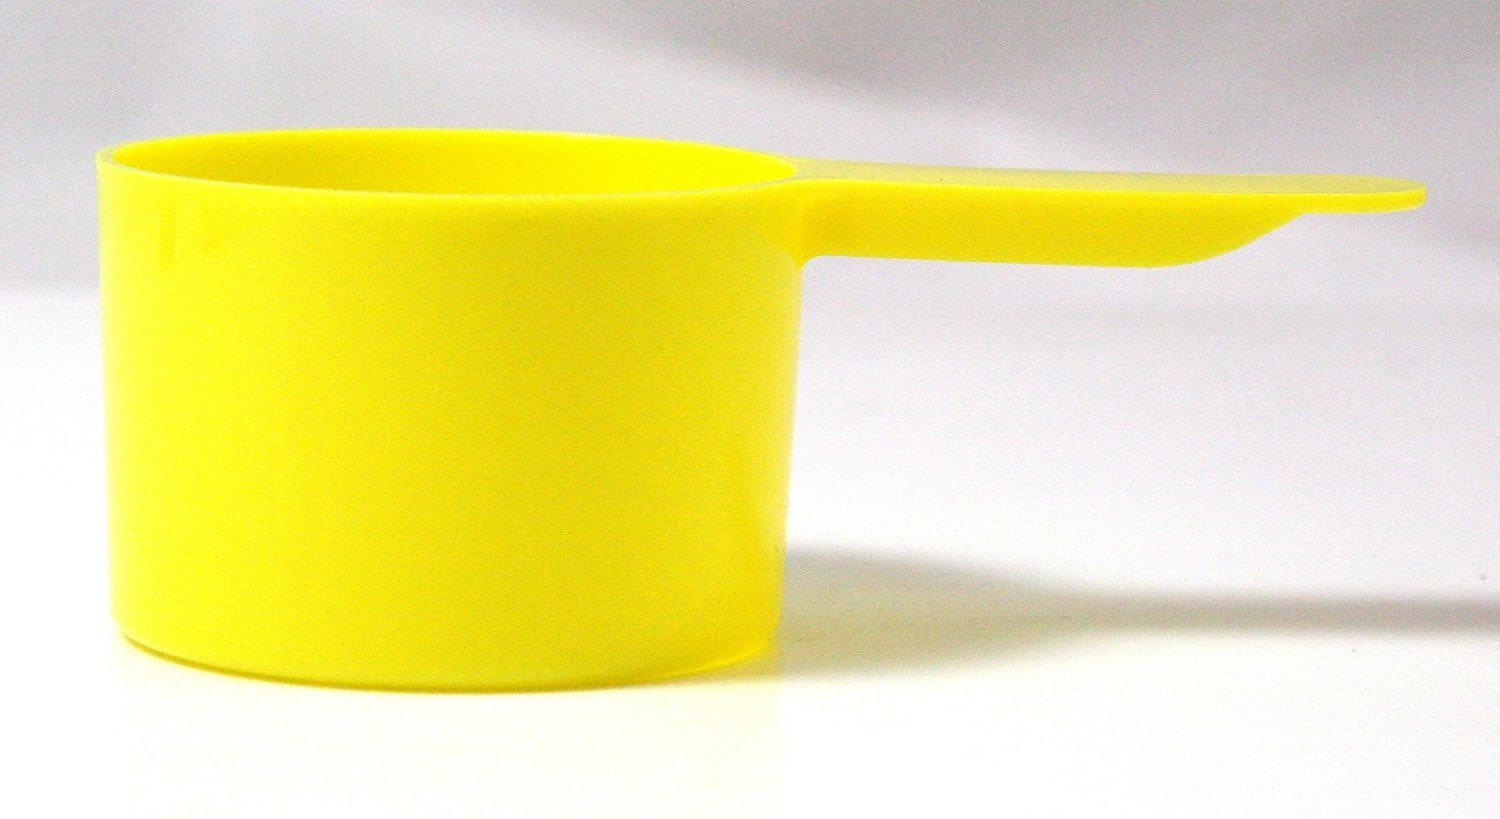 1 Ounce (30mL) Yellow Plastic Measure, Case of 1100 Mesauring Scoops